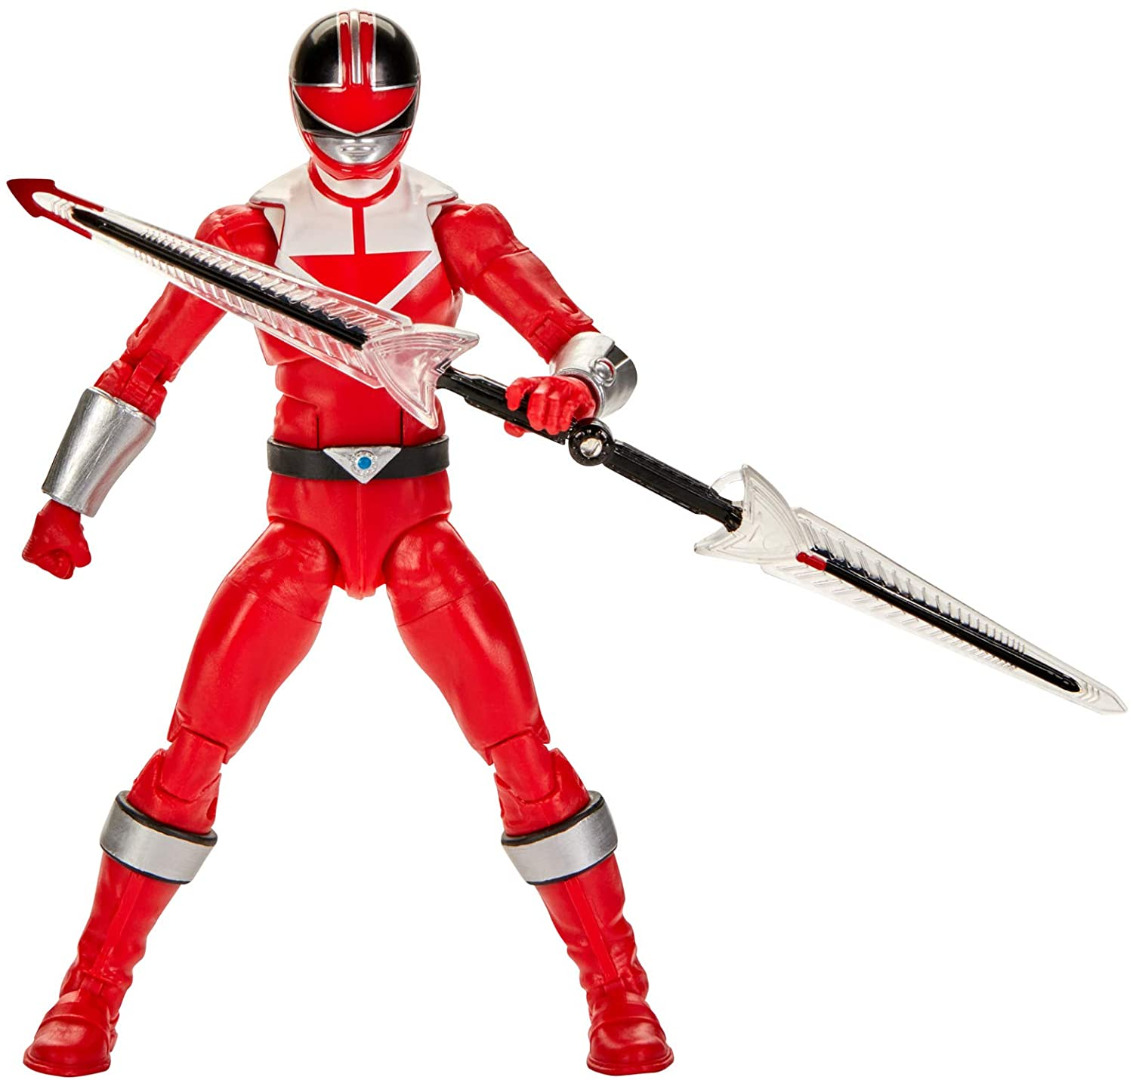 Power Rangers Lightning Collection Ac. Fig. Red Ranger 15 cm 2020 Wave 2